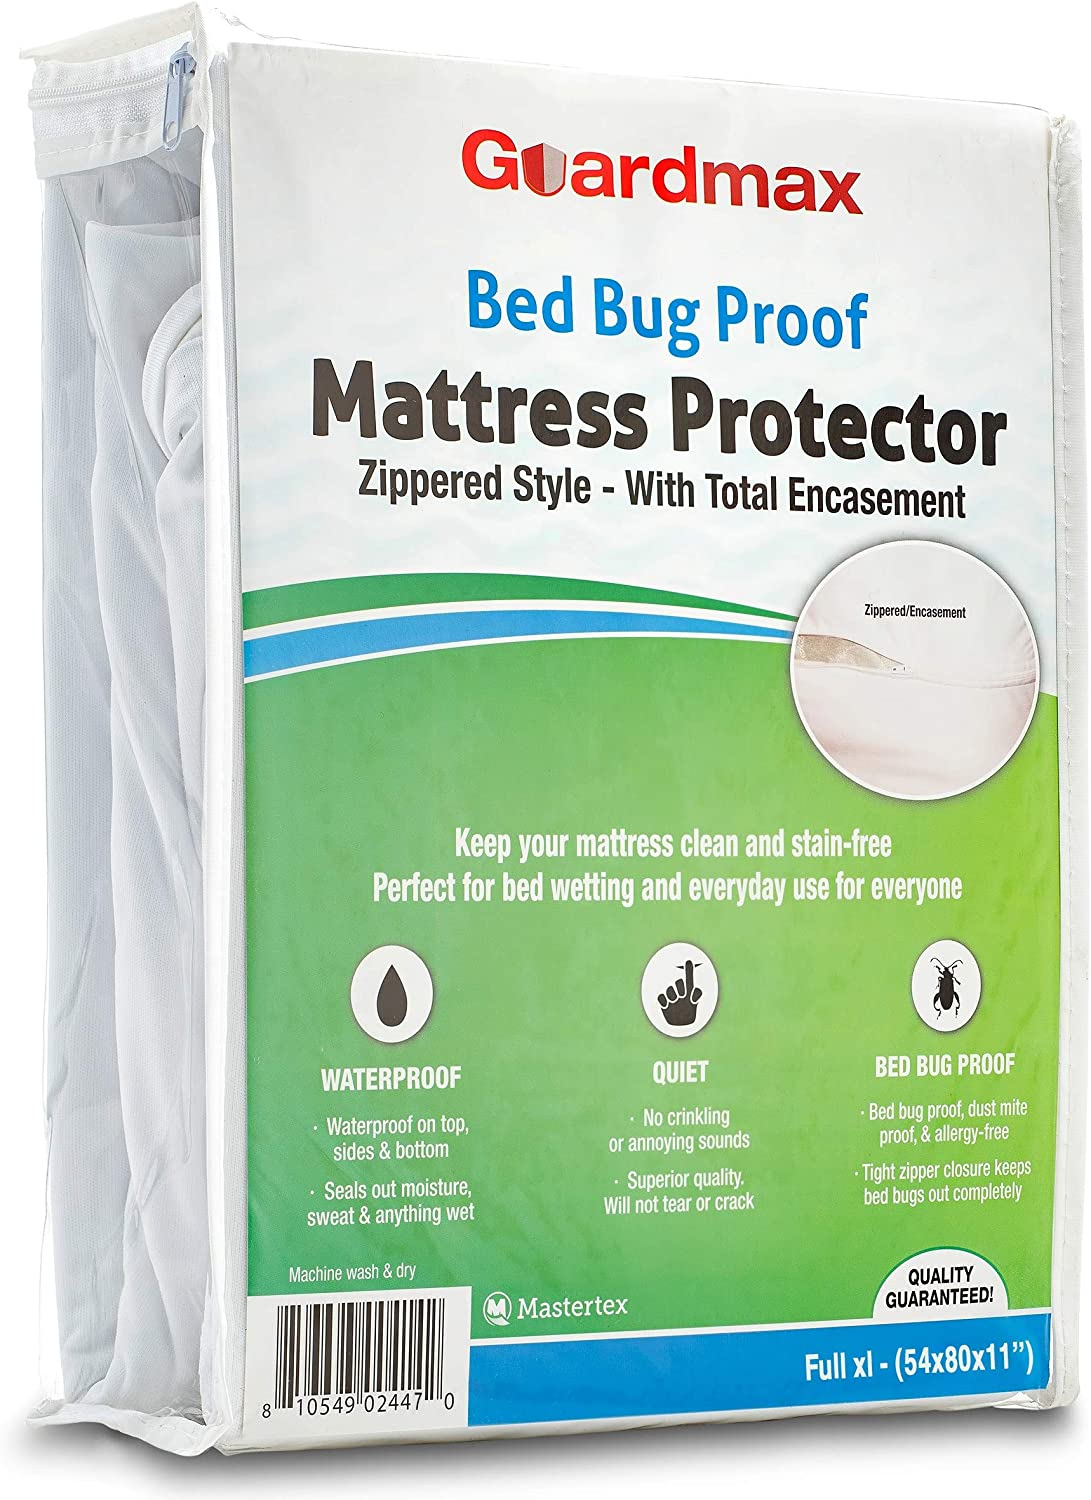 Guardmax Full Extra Long Mattress Protector Cover Zippered | 100% Waterproof Bed Bug Encasement | Soft, Hypoallergenic and Breathable | Full XL Size